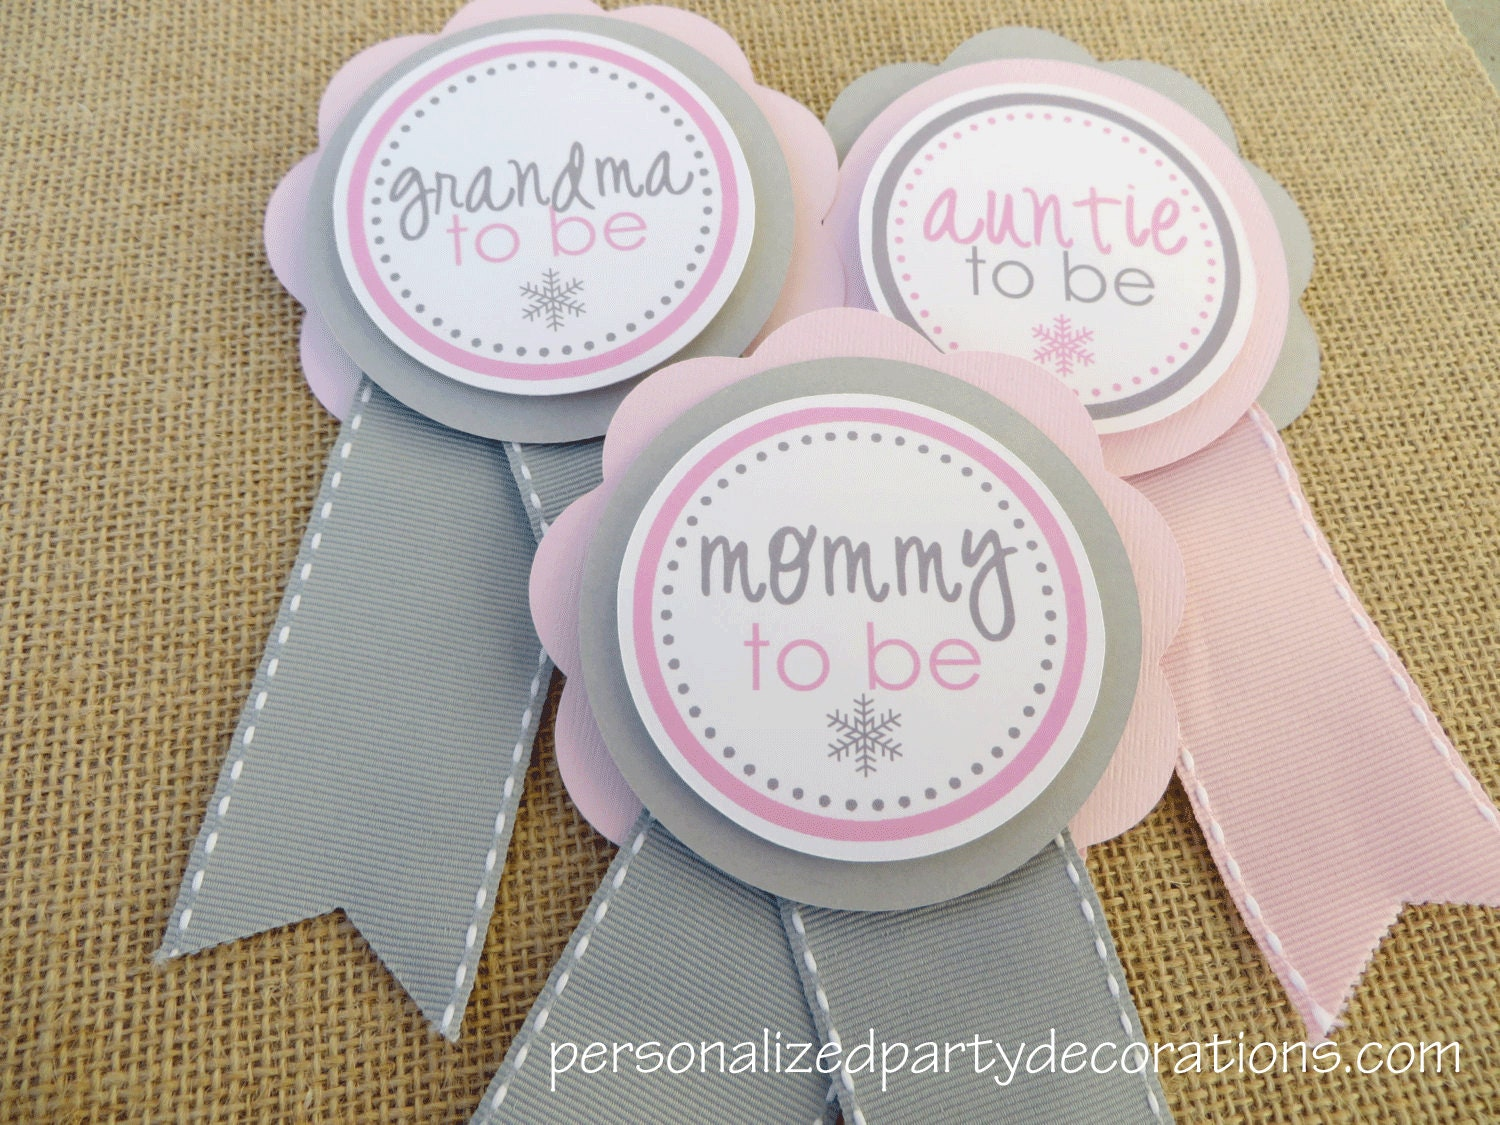 Achat deco baby shower id e inspirante pour for Decoration achat